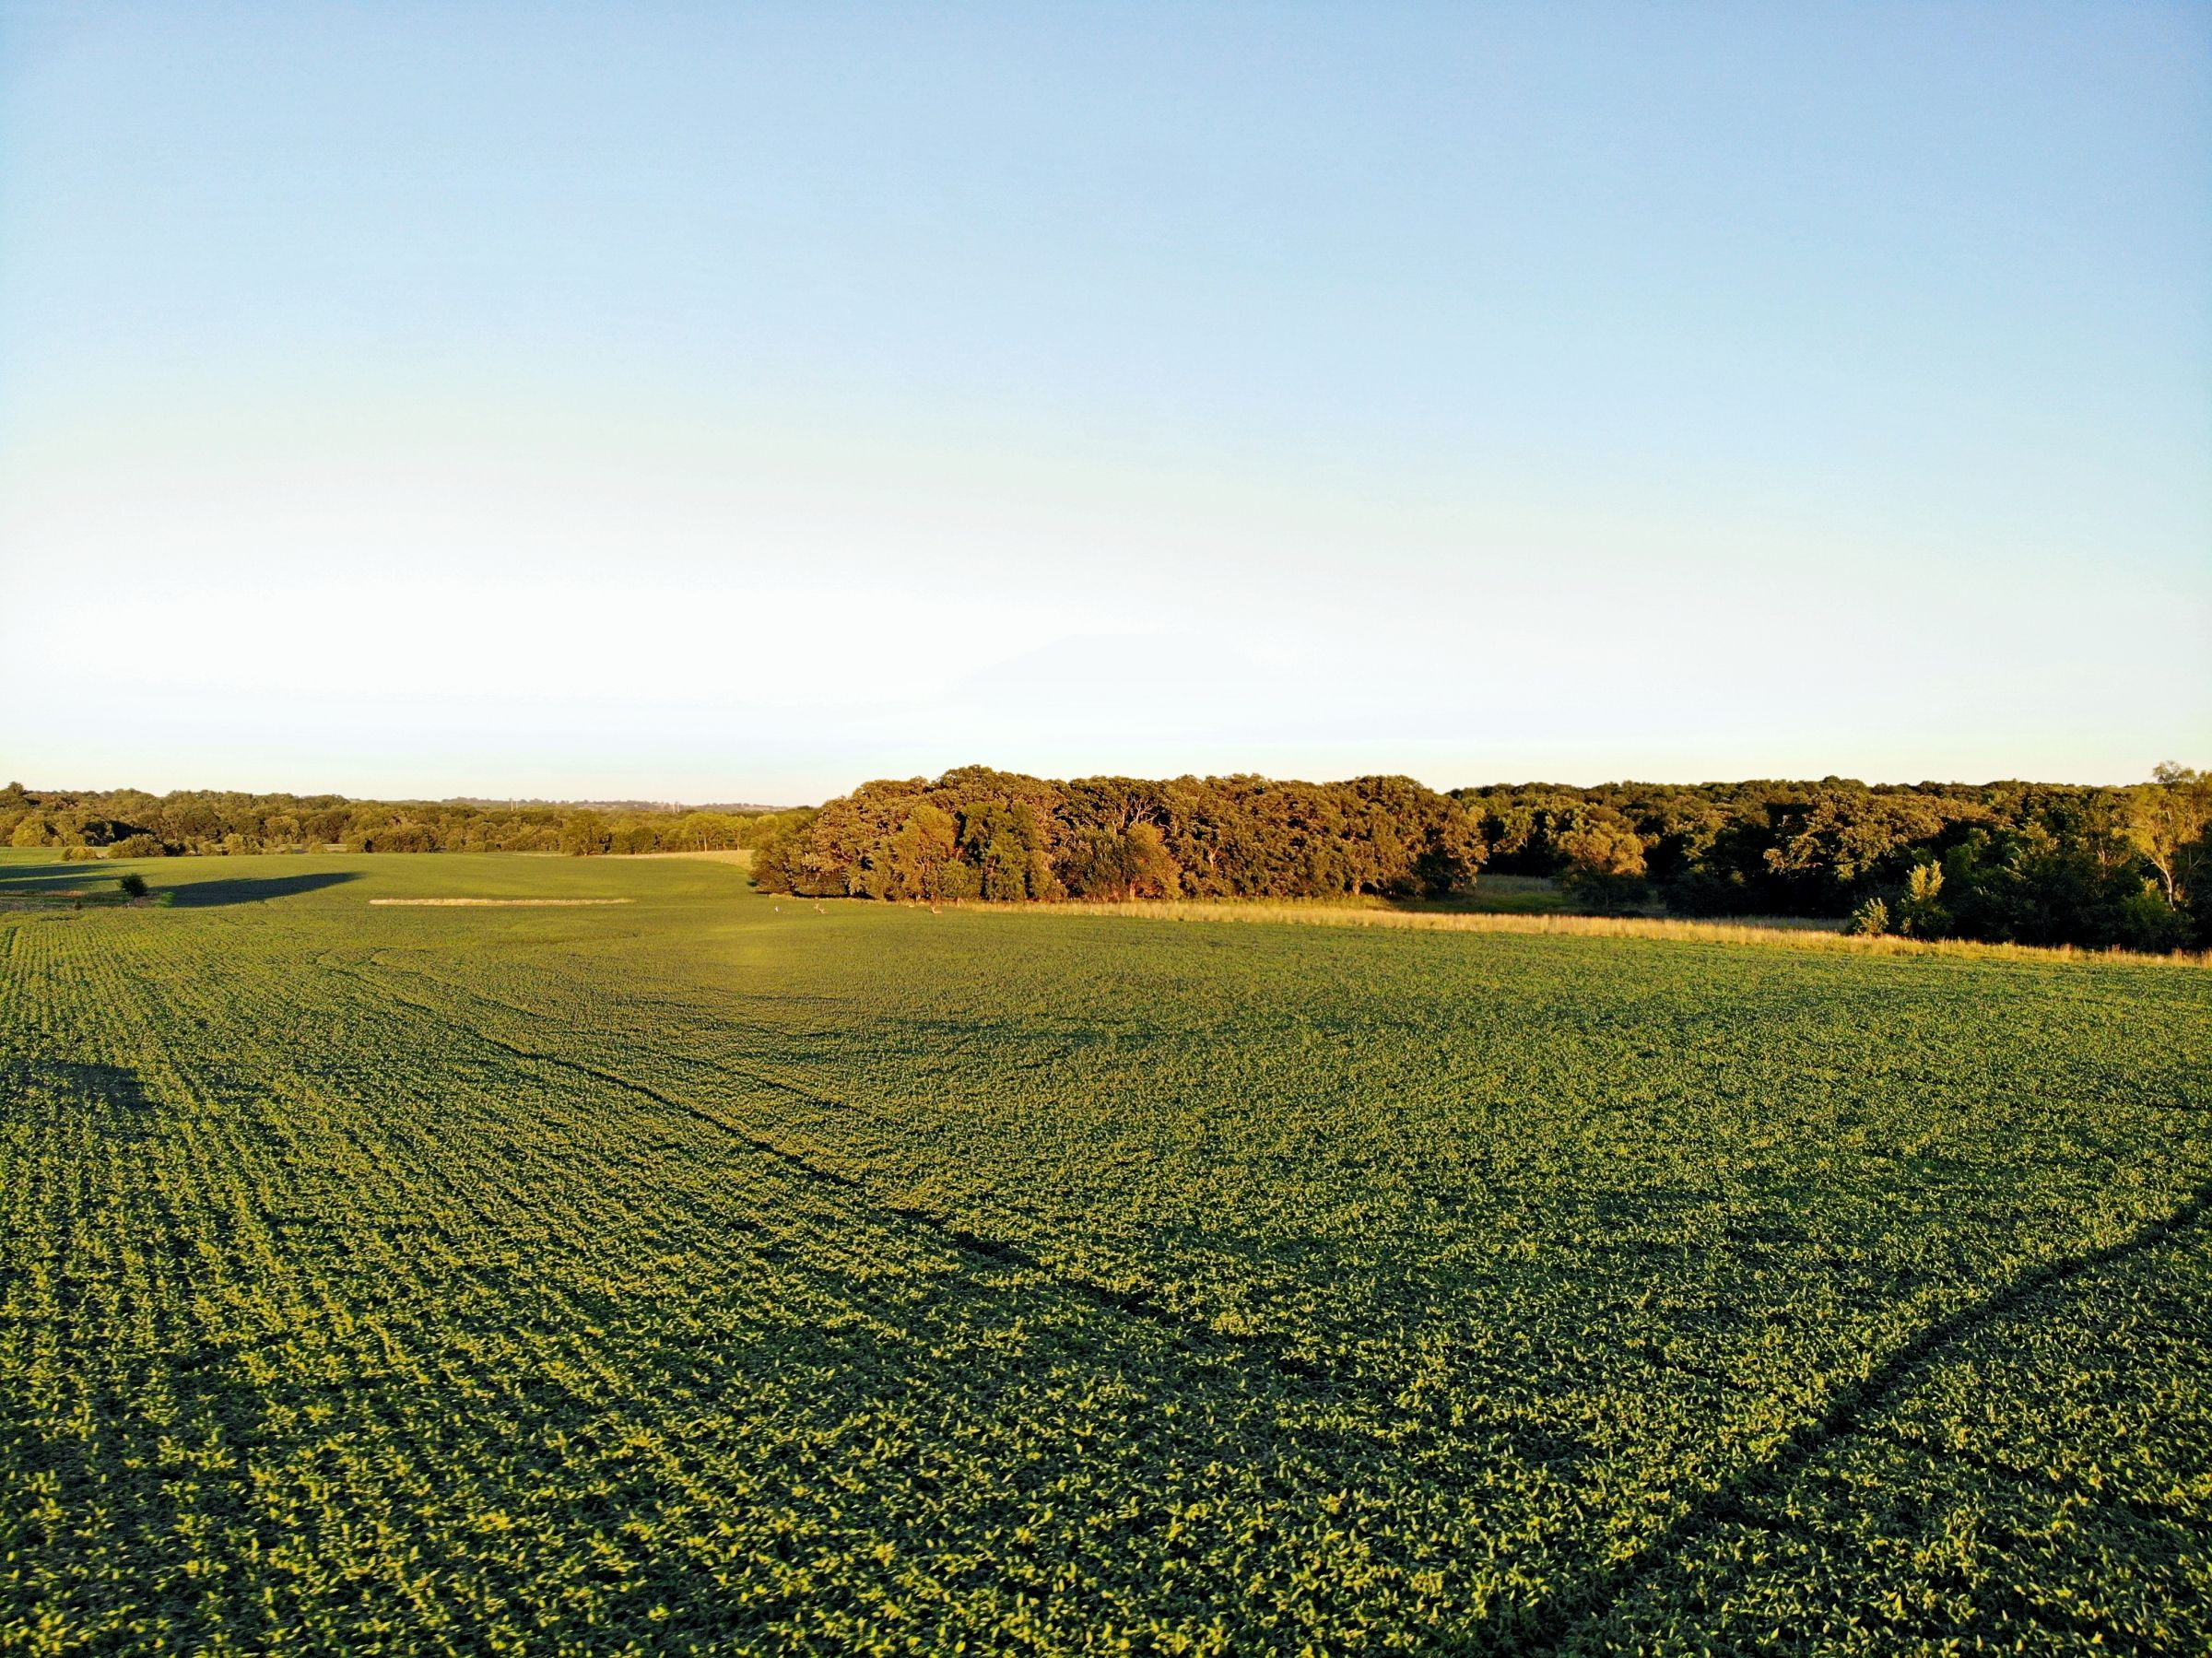 land-madison-county-iowa-123-acres-listing-number-15122-2-2020-08-24-022516.jpg